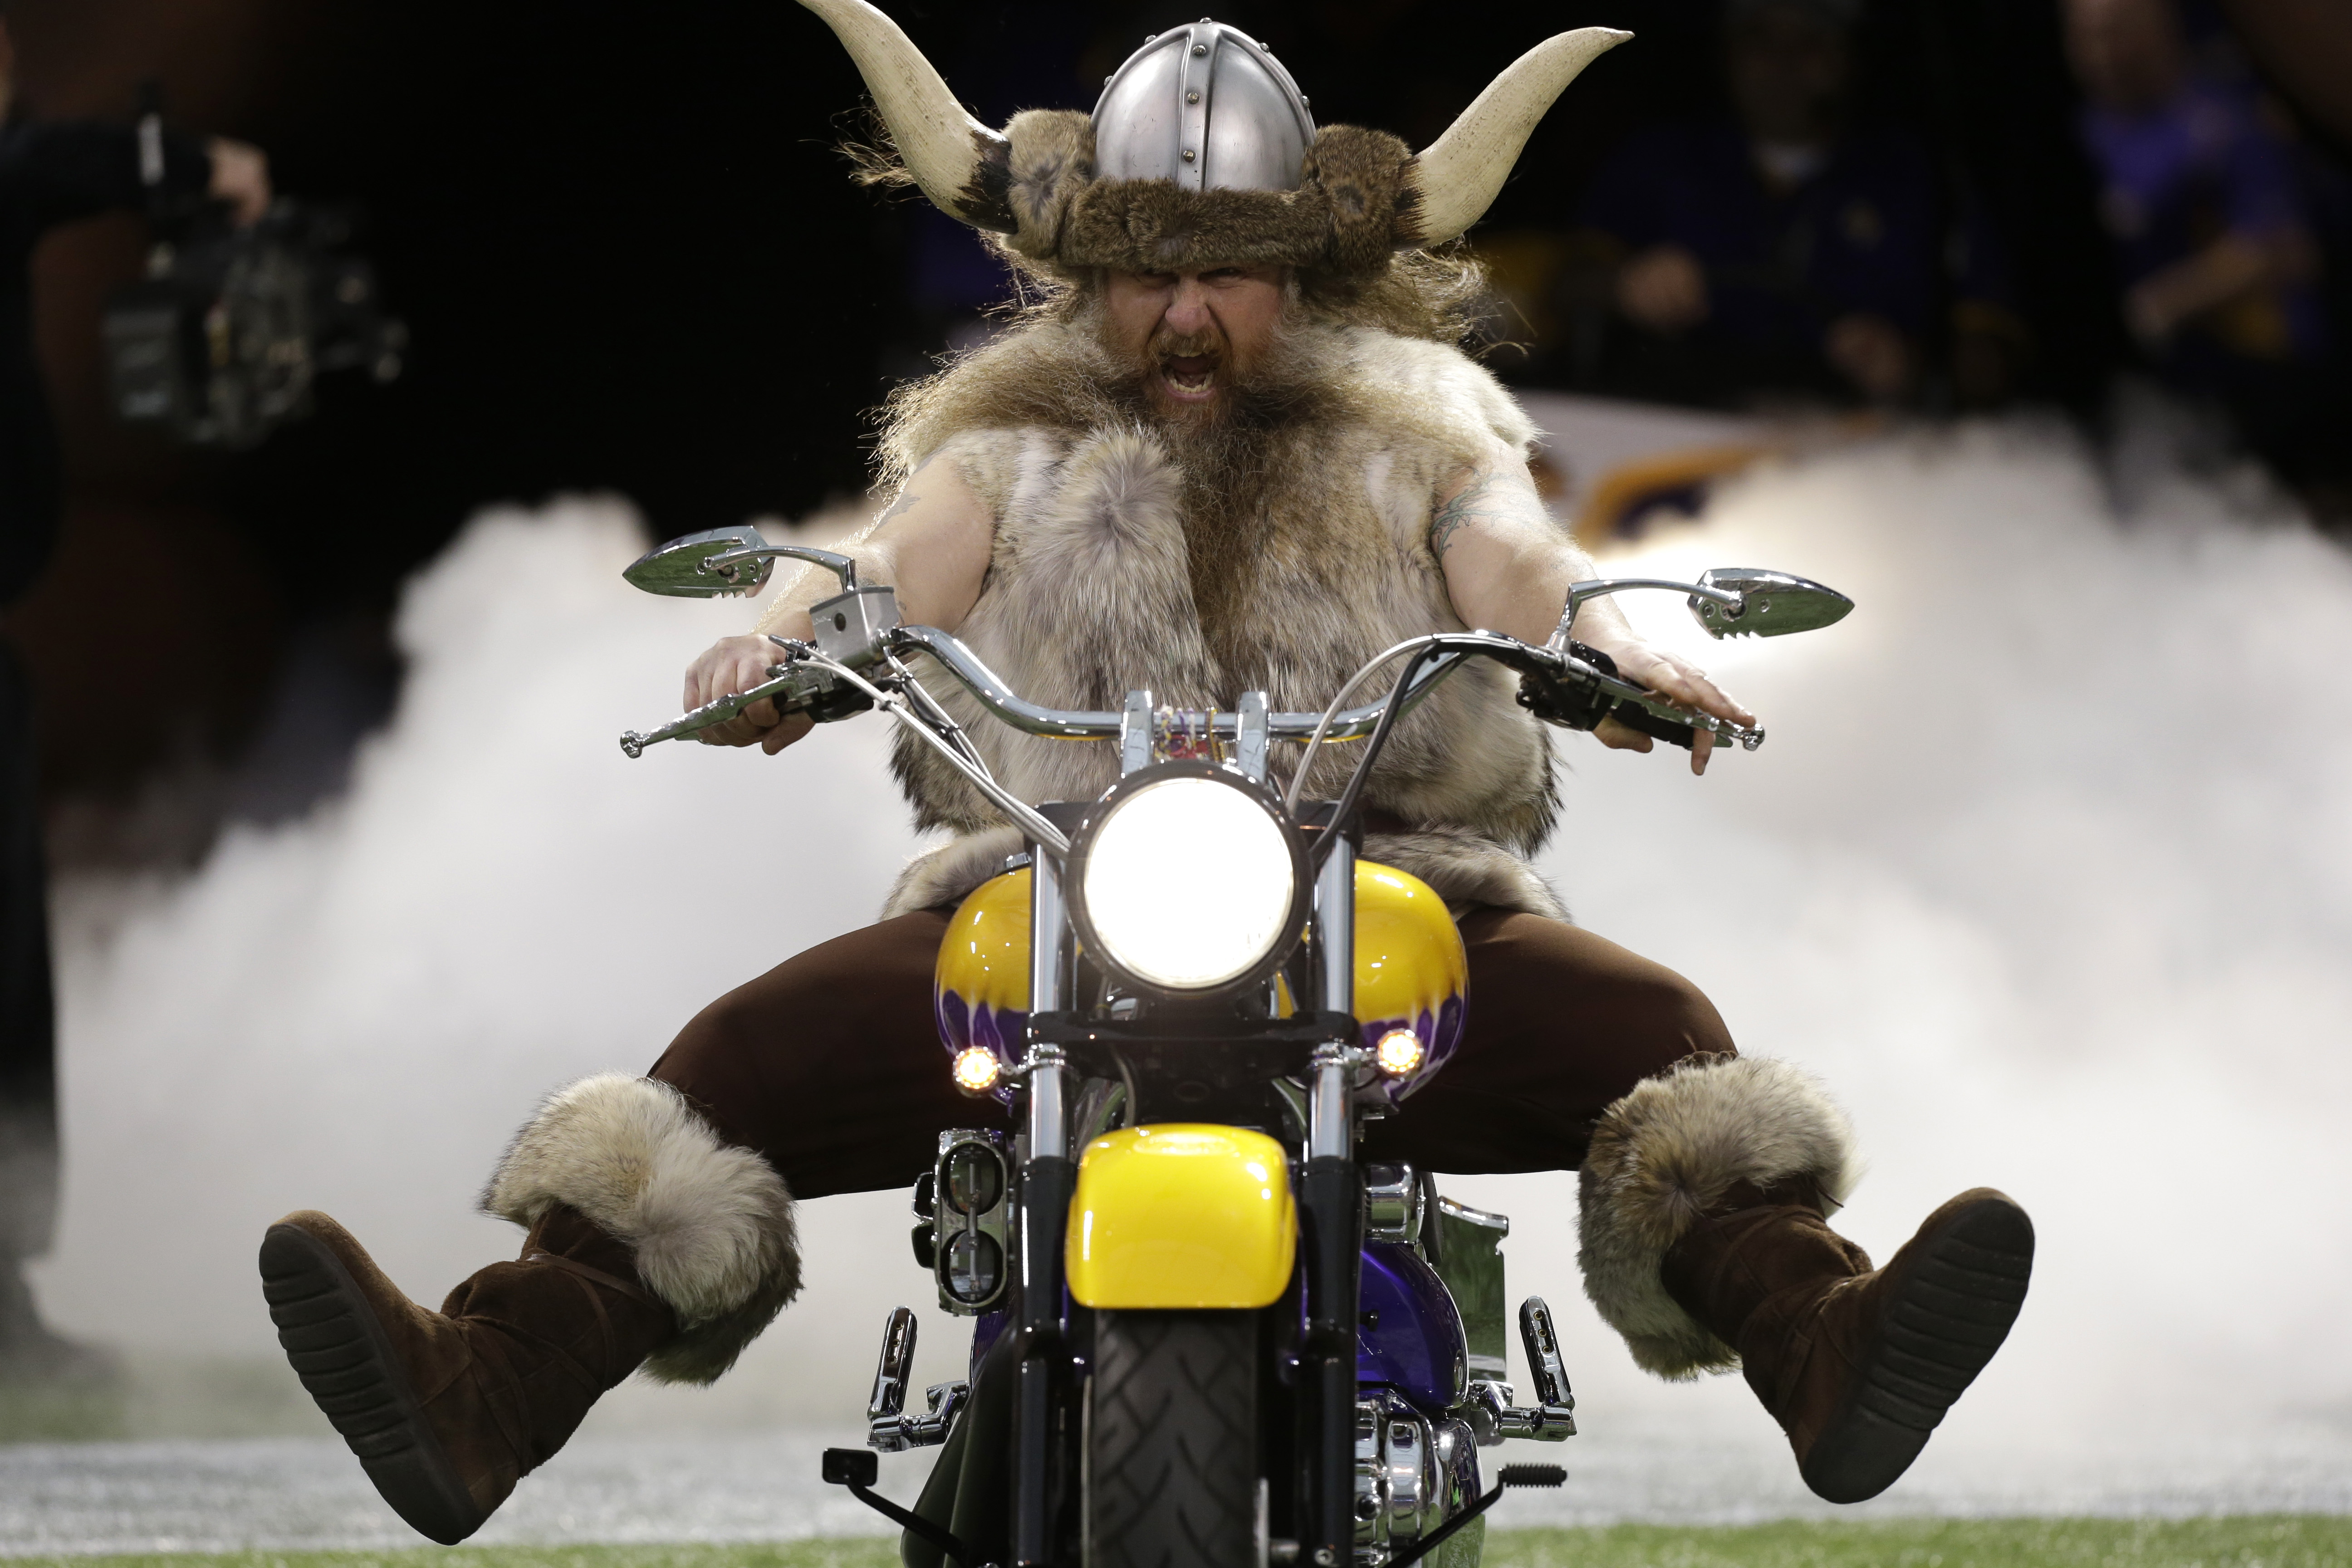 FILE - In this Nov. 11, 2012, file photo, Minnesota Vikings mascot Ragnar the Viking rides onto the field before an NFL football game between the Vikings and the Detroit Lions in Minneapolis. The Vikings said Monday, Sept. 21, 2015, their contract with Jo